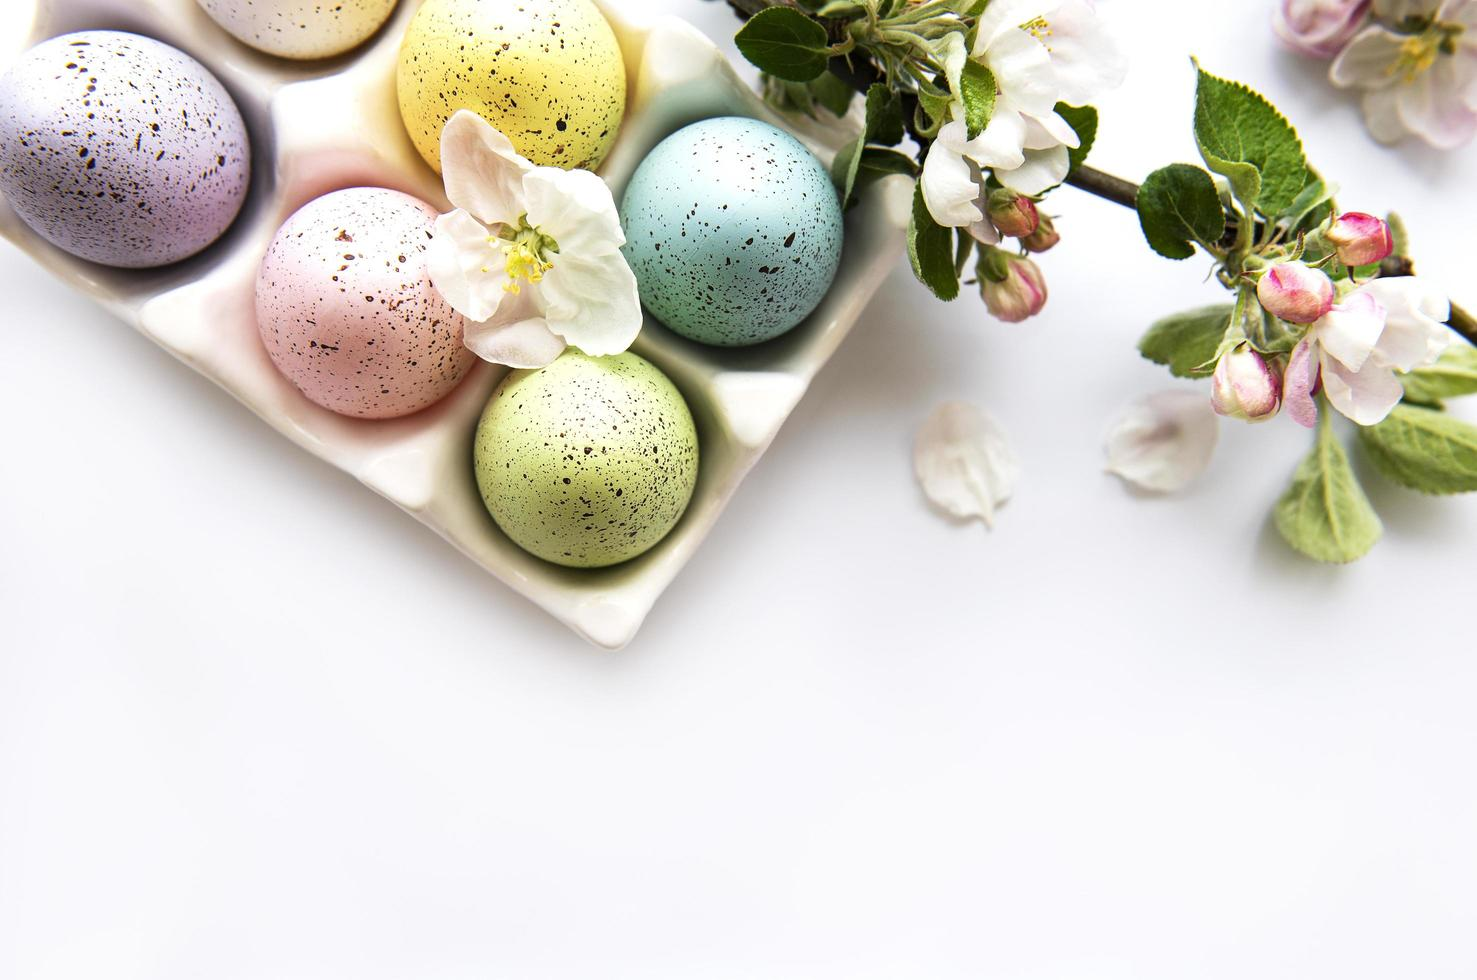 Top view of painted Easter eggs photo